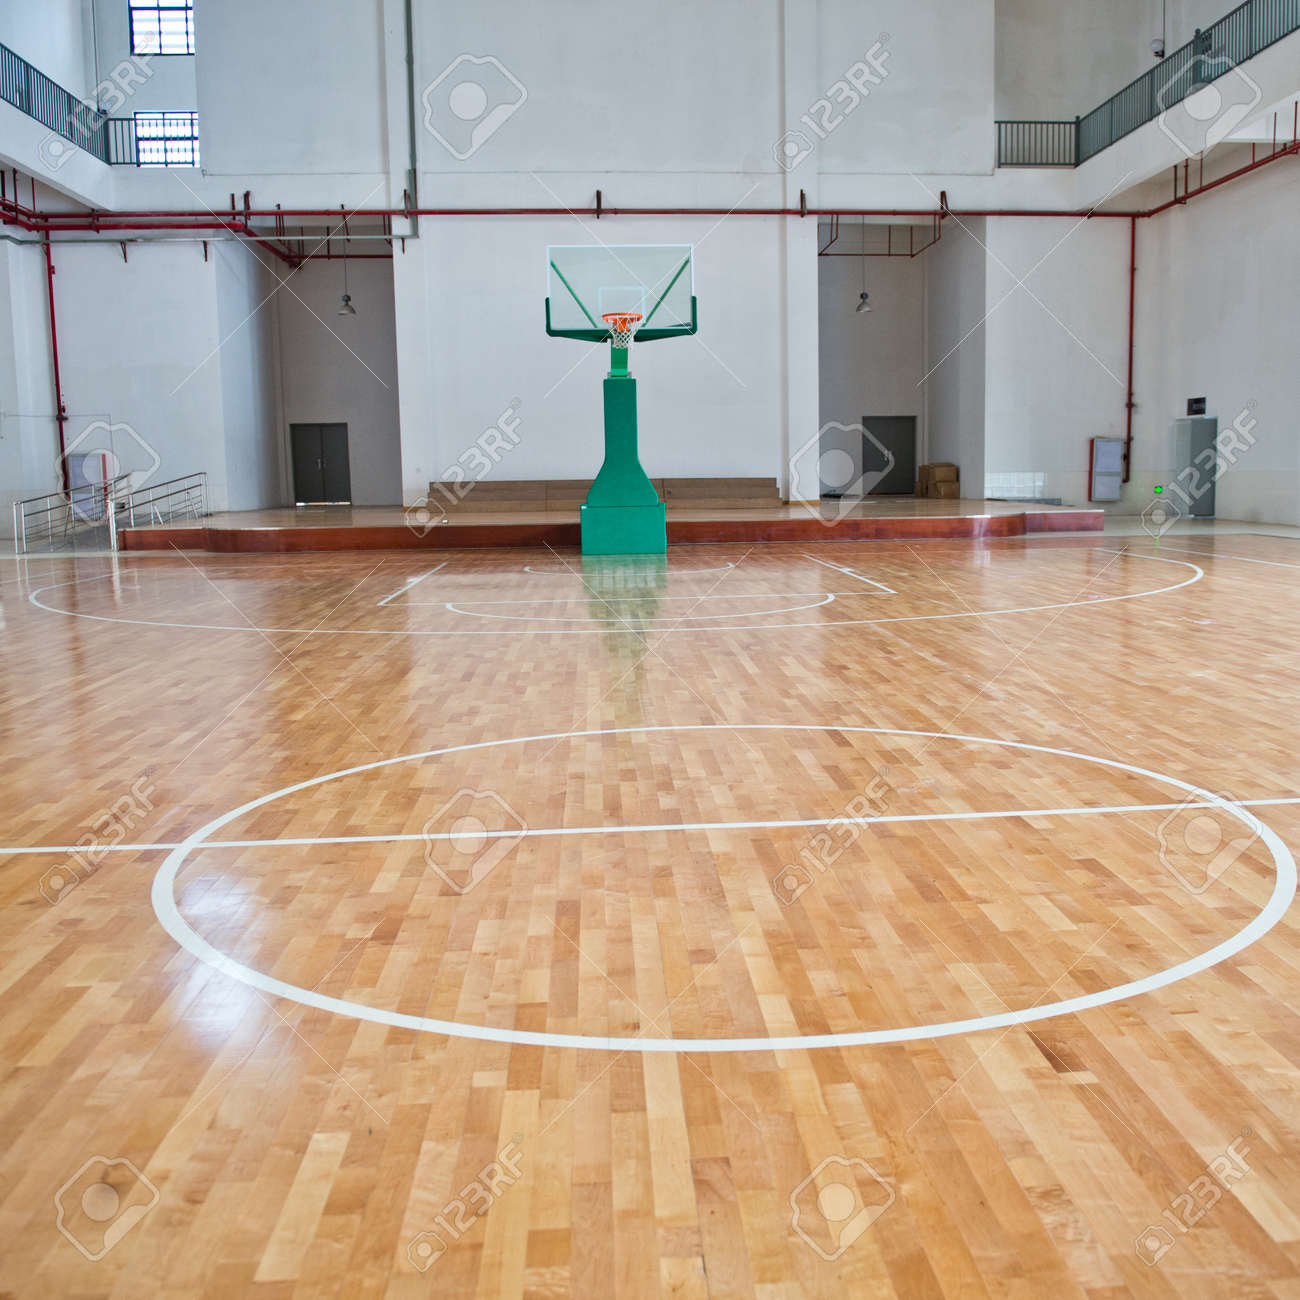 Basketball Court, School Gym Indoor. Stock Photo, Picture And ...